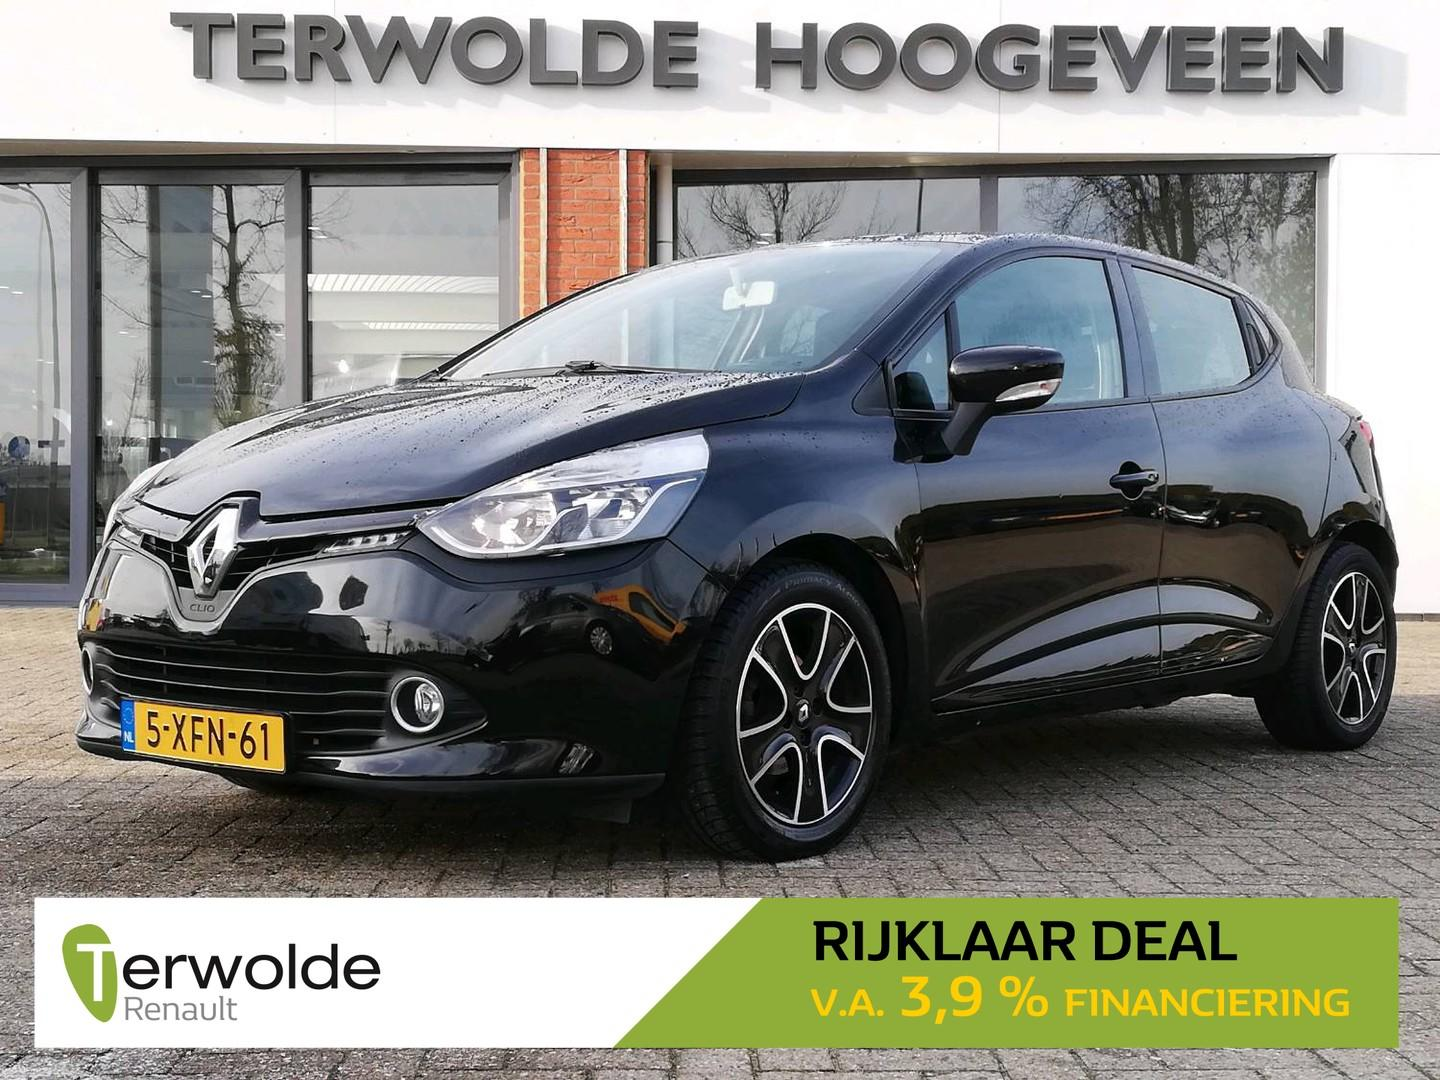 Renault Clio 0.9 tce expression / airco / metaalkleur / lichtmetaal / cruise controle / netto deal!!!!